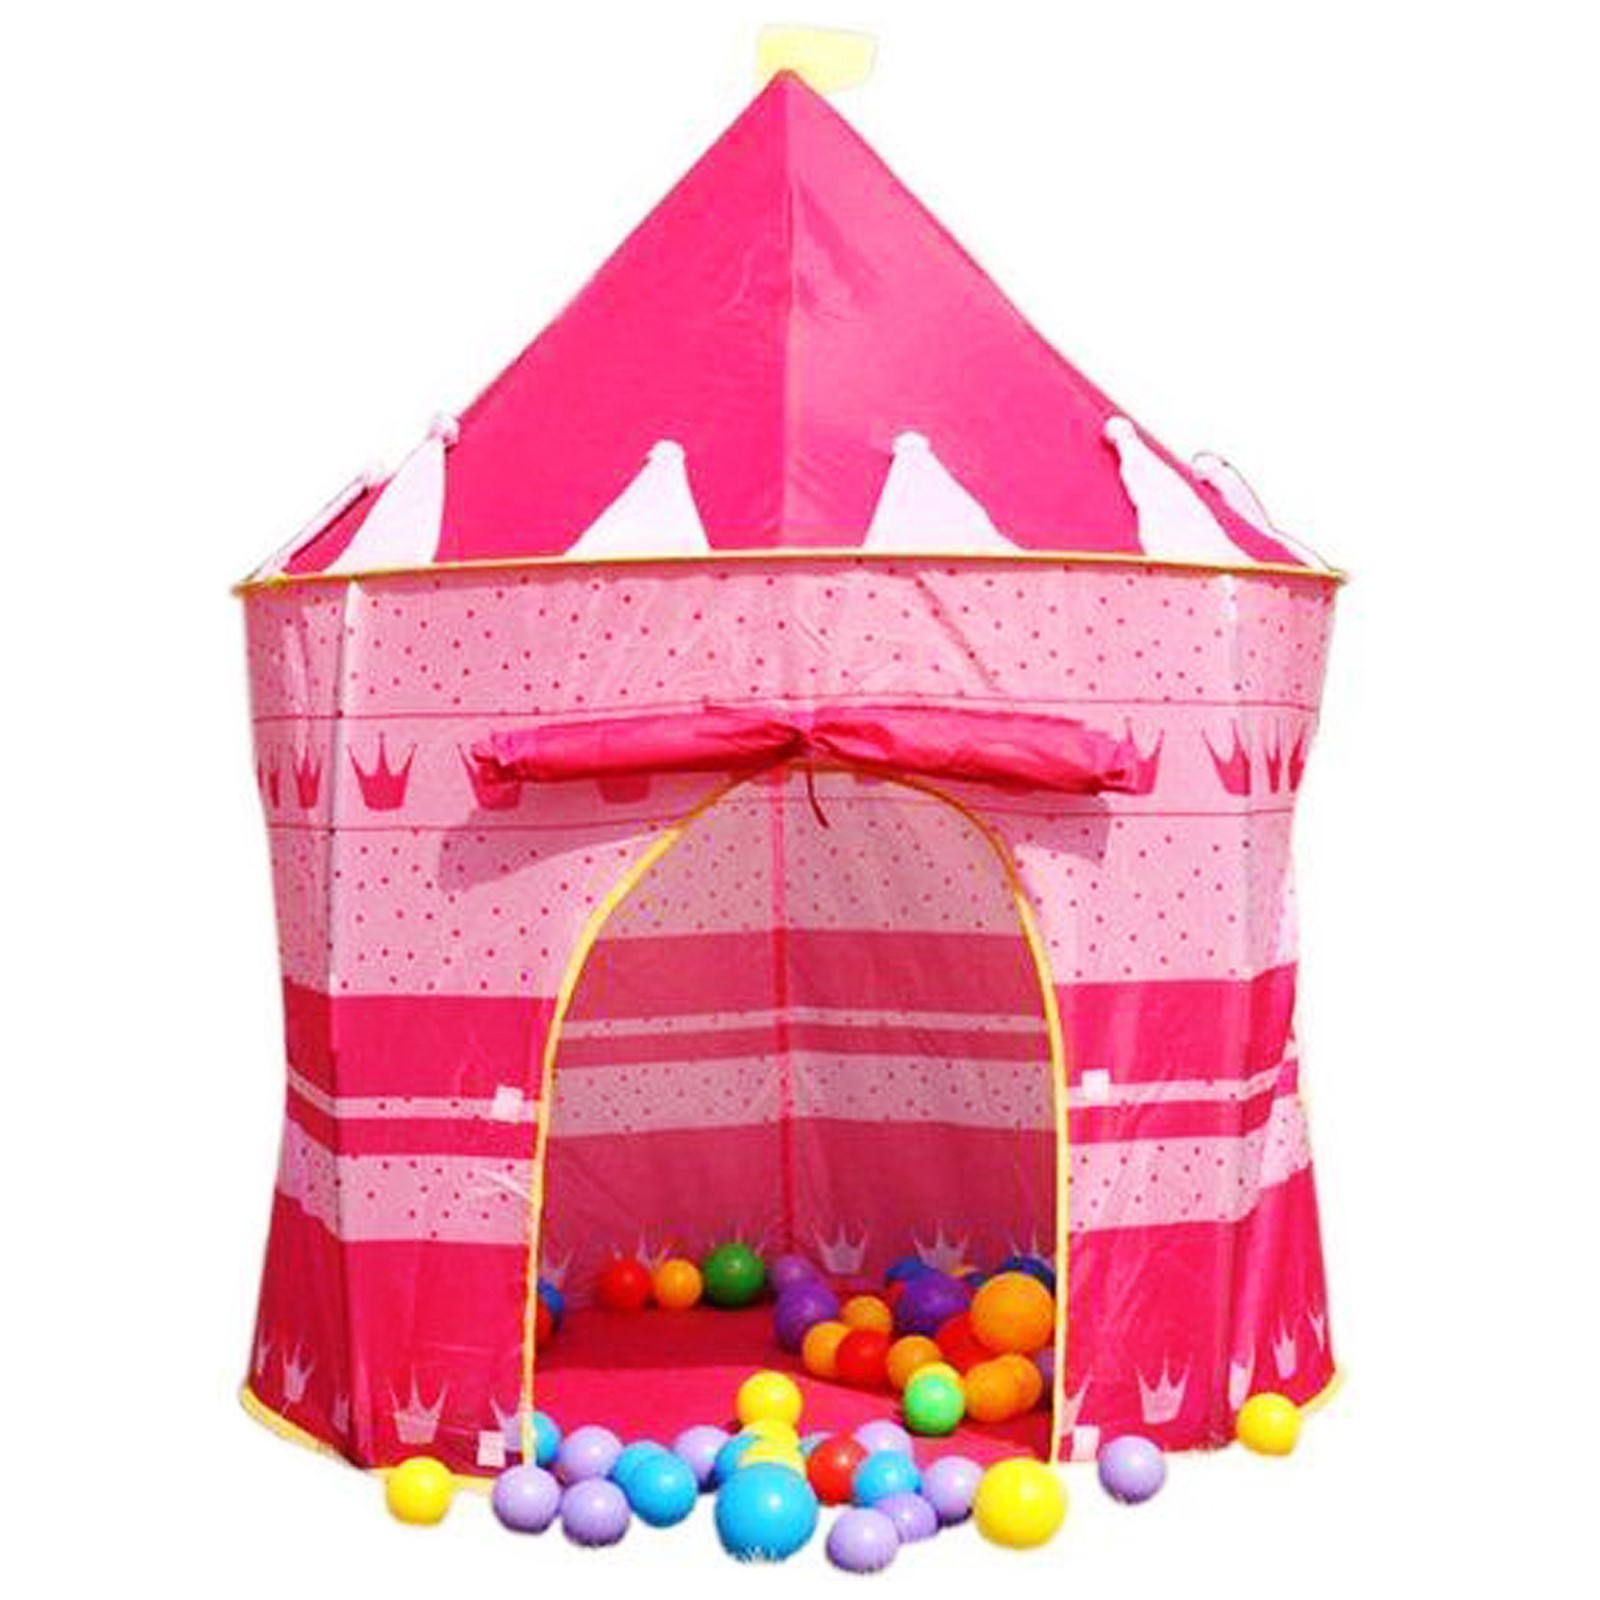 CHILDRENS-KIDS-POP-UP-CASTLE-PLAYHOUSE-GIRLS-PRINCESS-  sc 1 st  eBay : childrens play tents uk - memphite.com